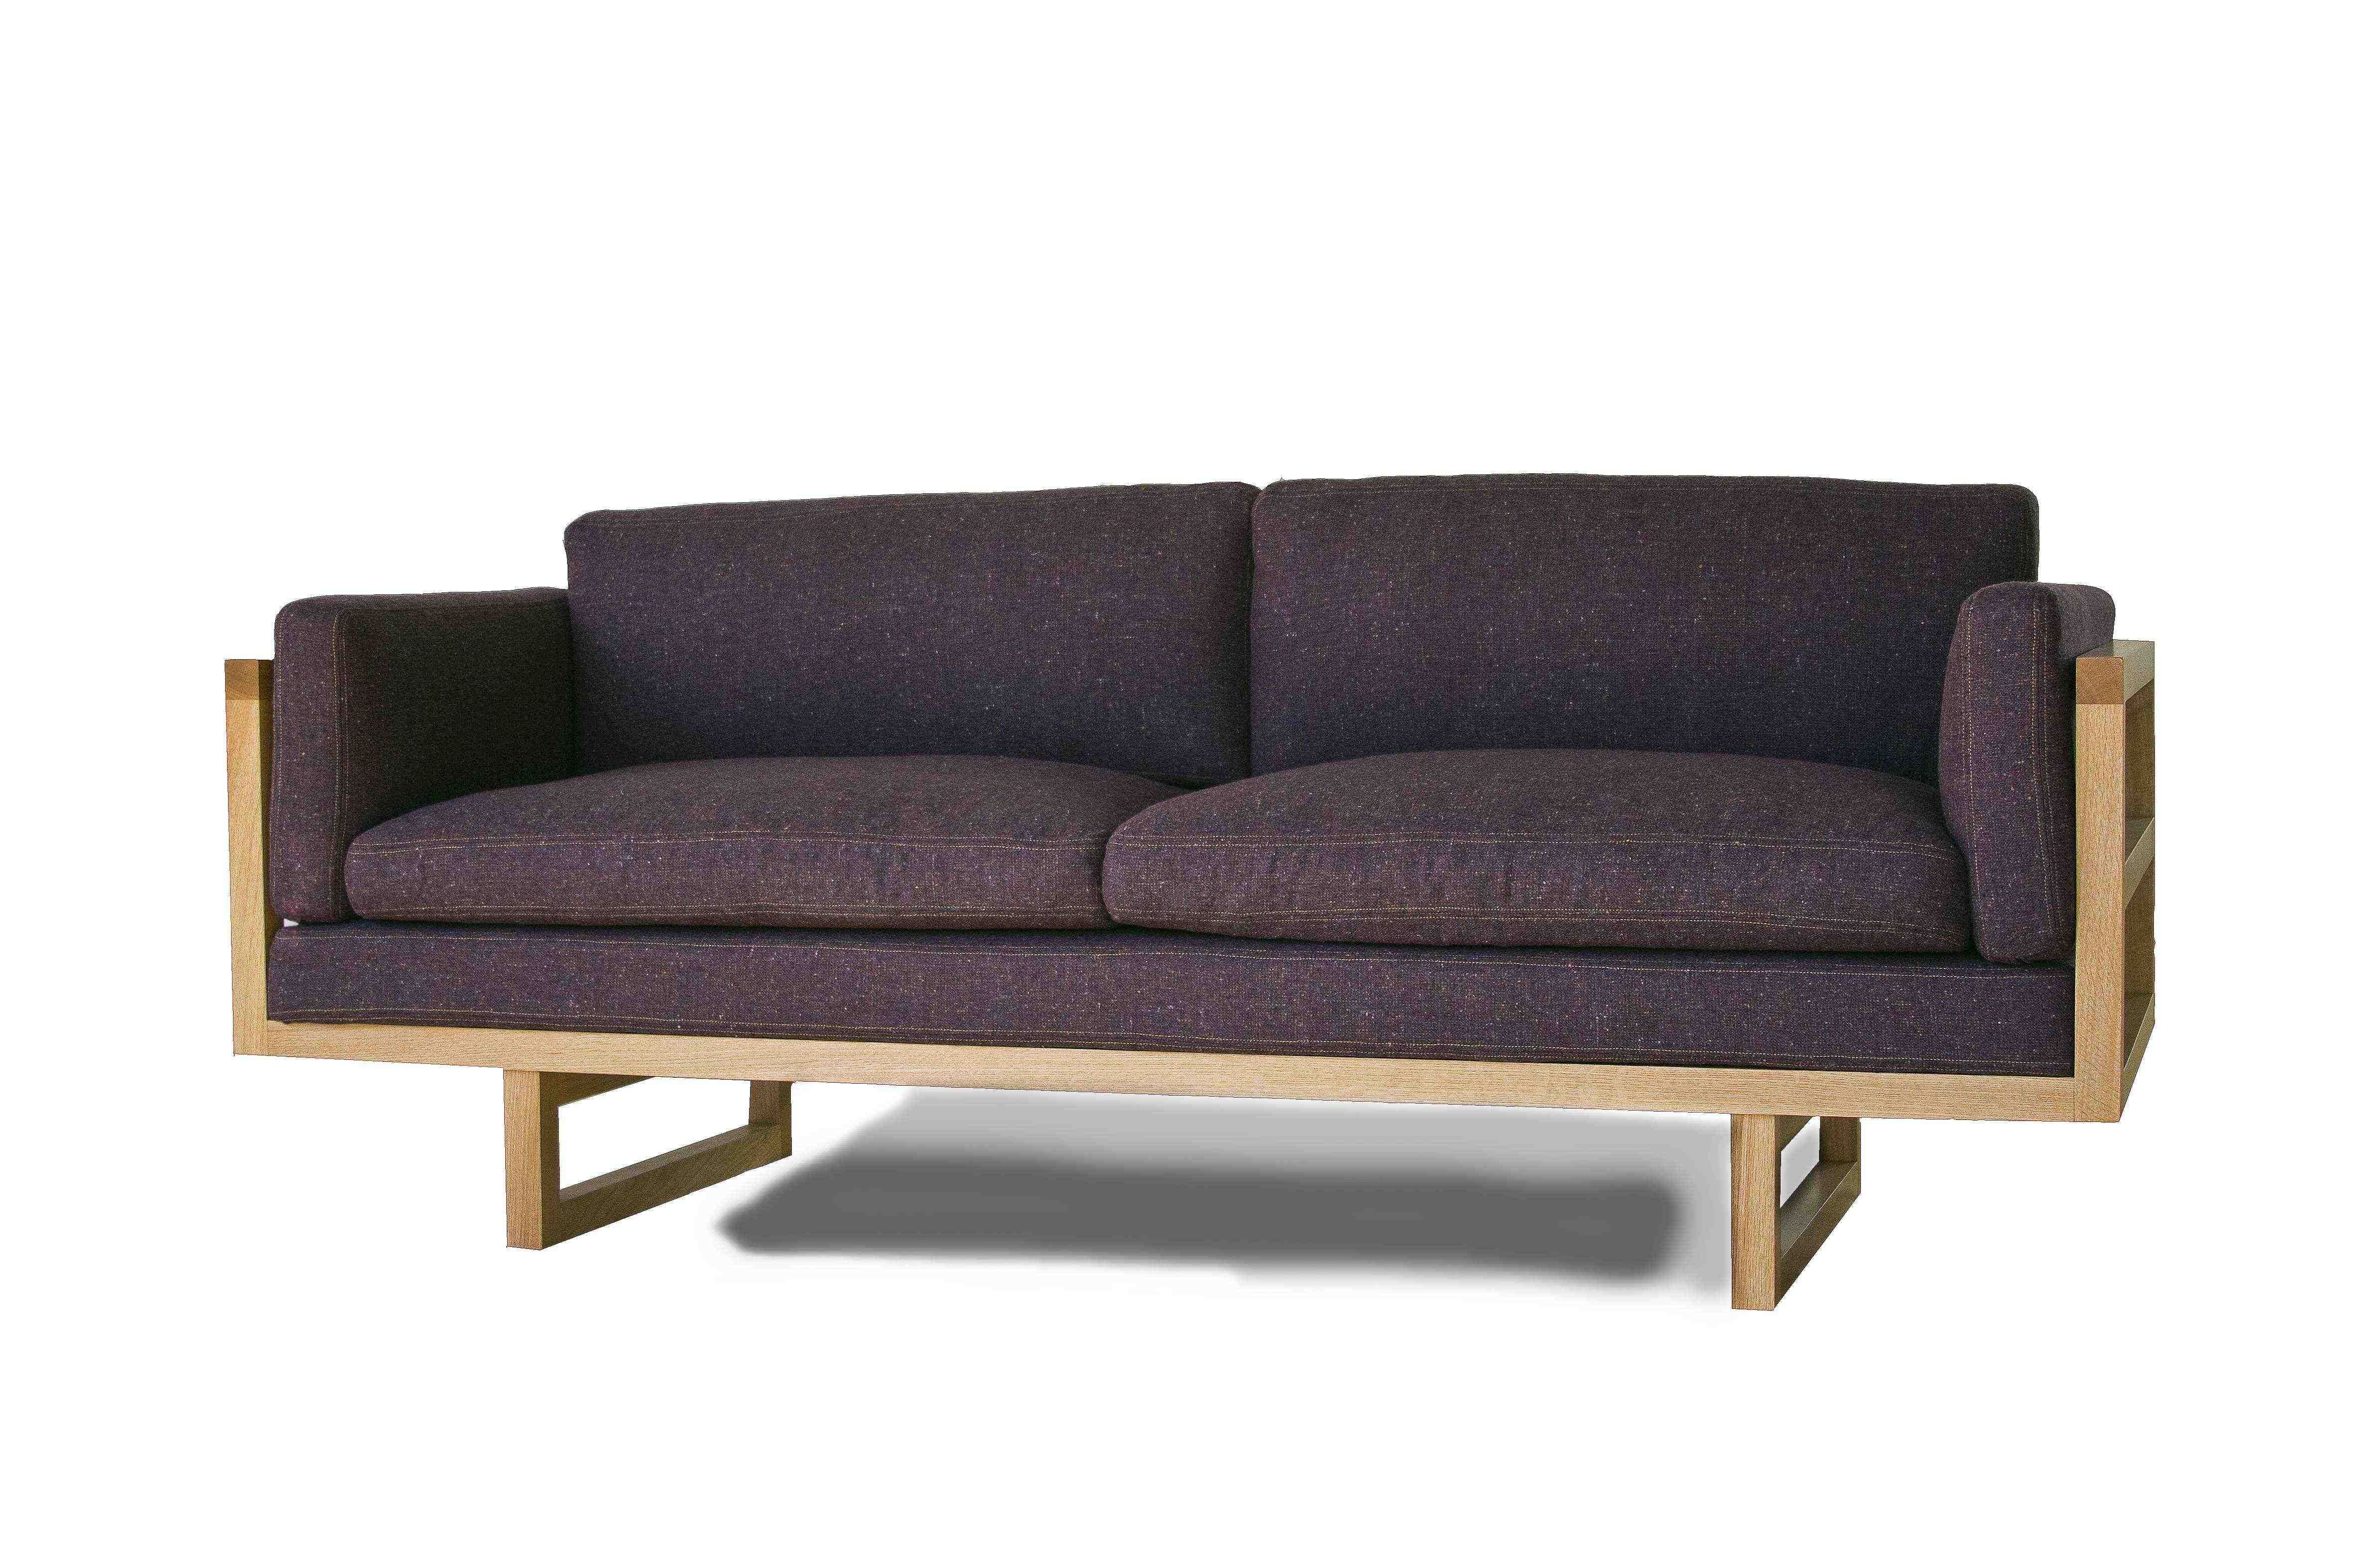 Oak Framed Sofa By Ou0027Driscoll Furniture, Upholstered In Donegal Irish Tweed  Woven